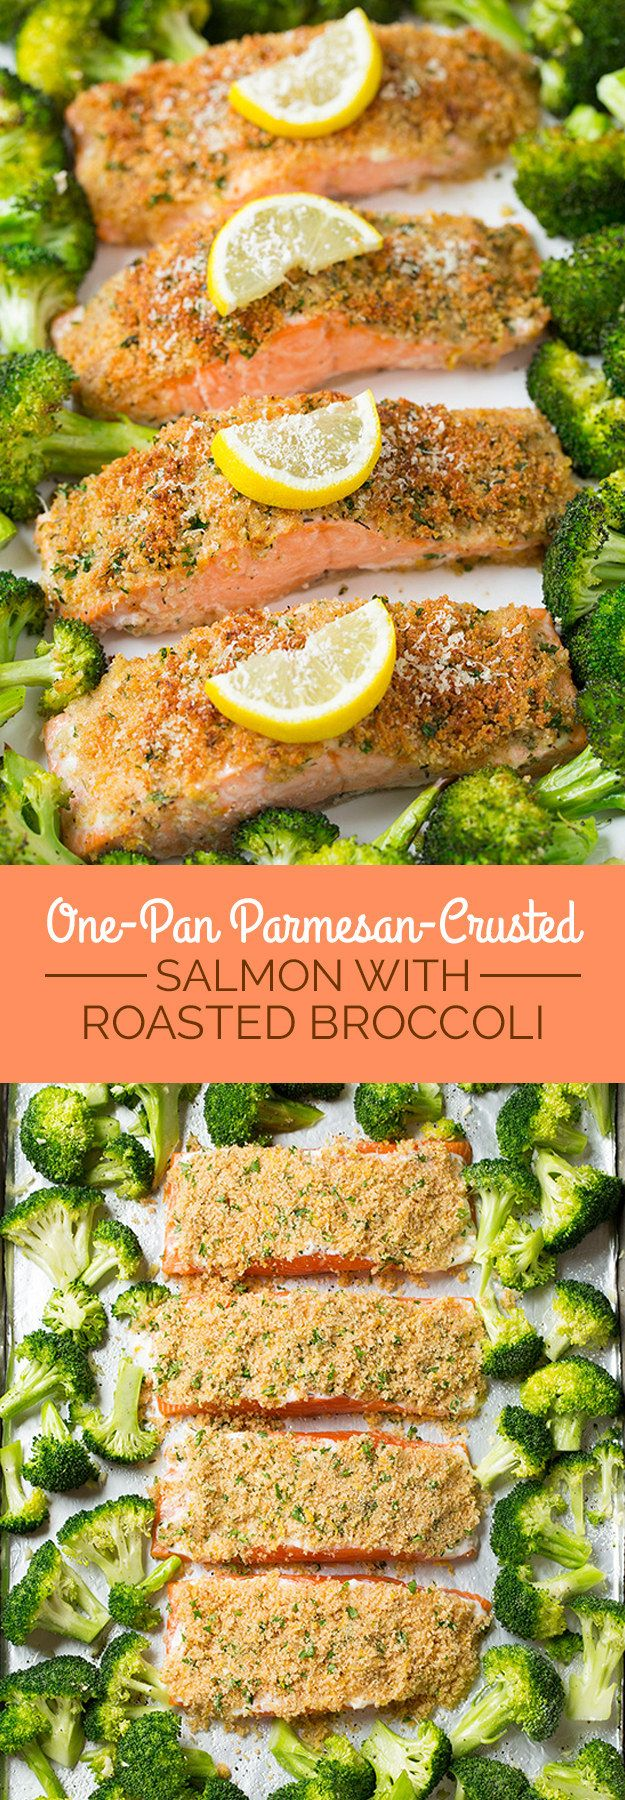 One-Pan Parmesan-Crusted Salmon with Roasted Broccoli | Here's What You Should Eat For Dinner This Week